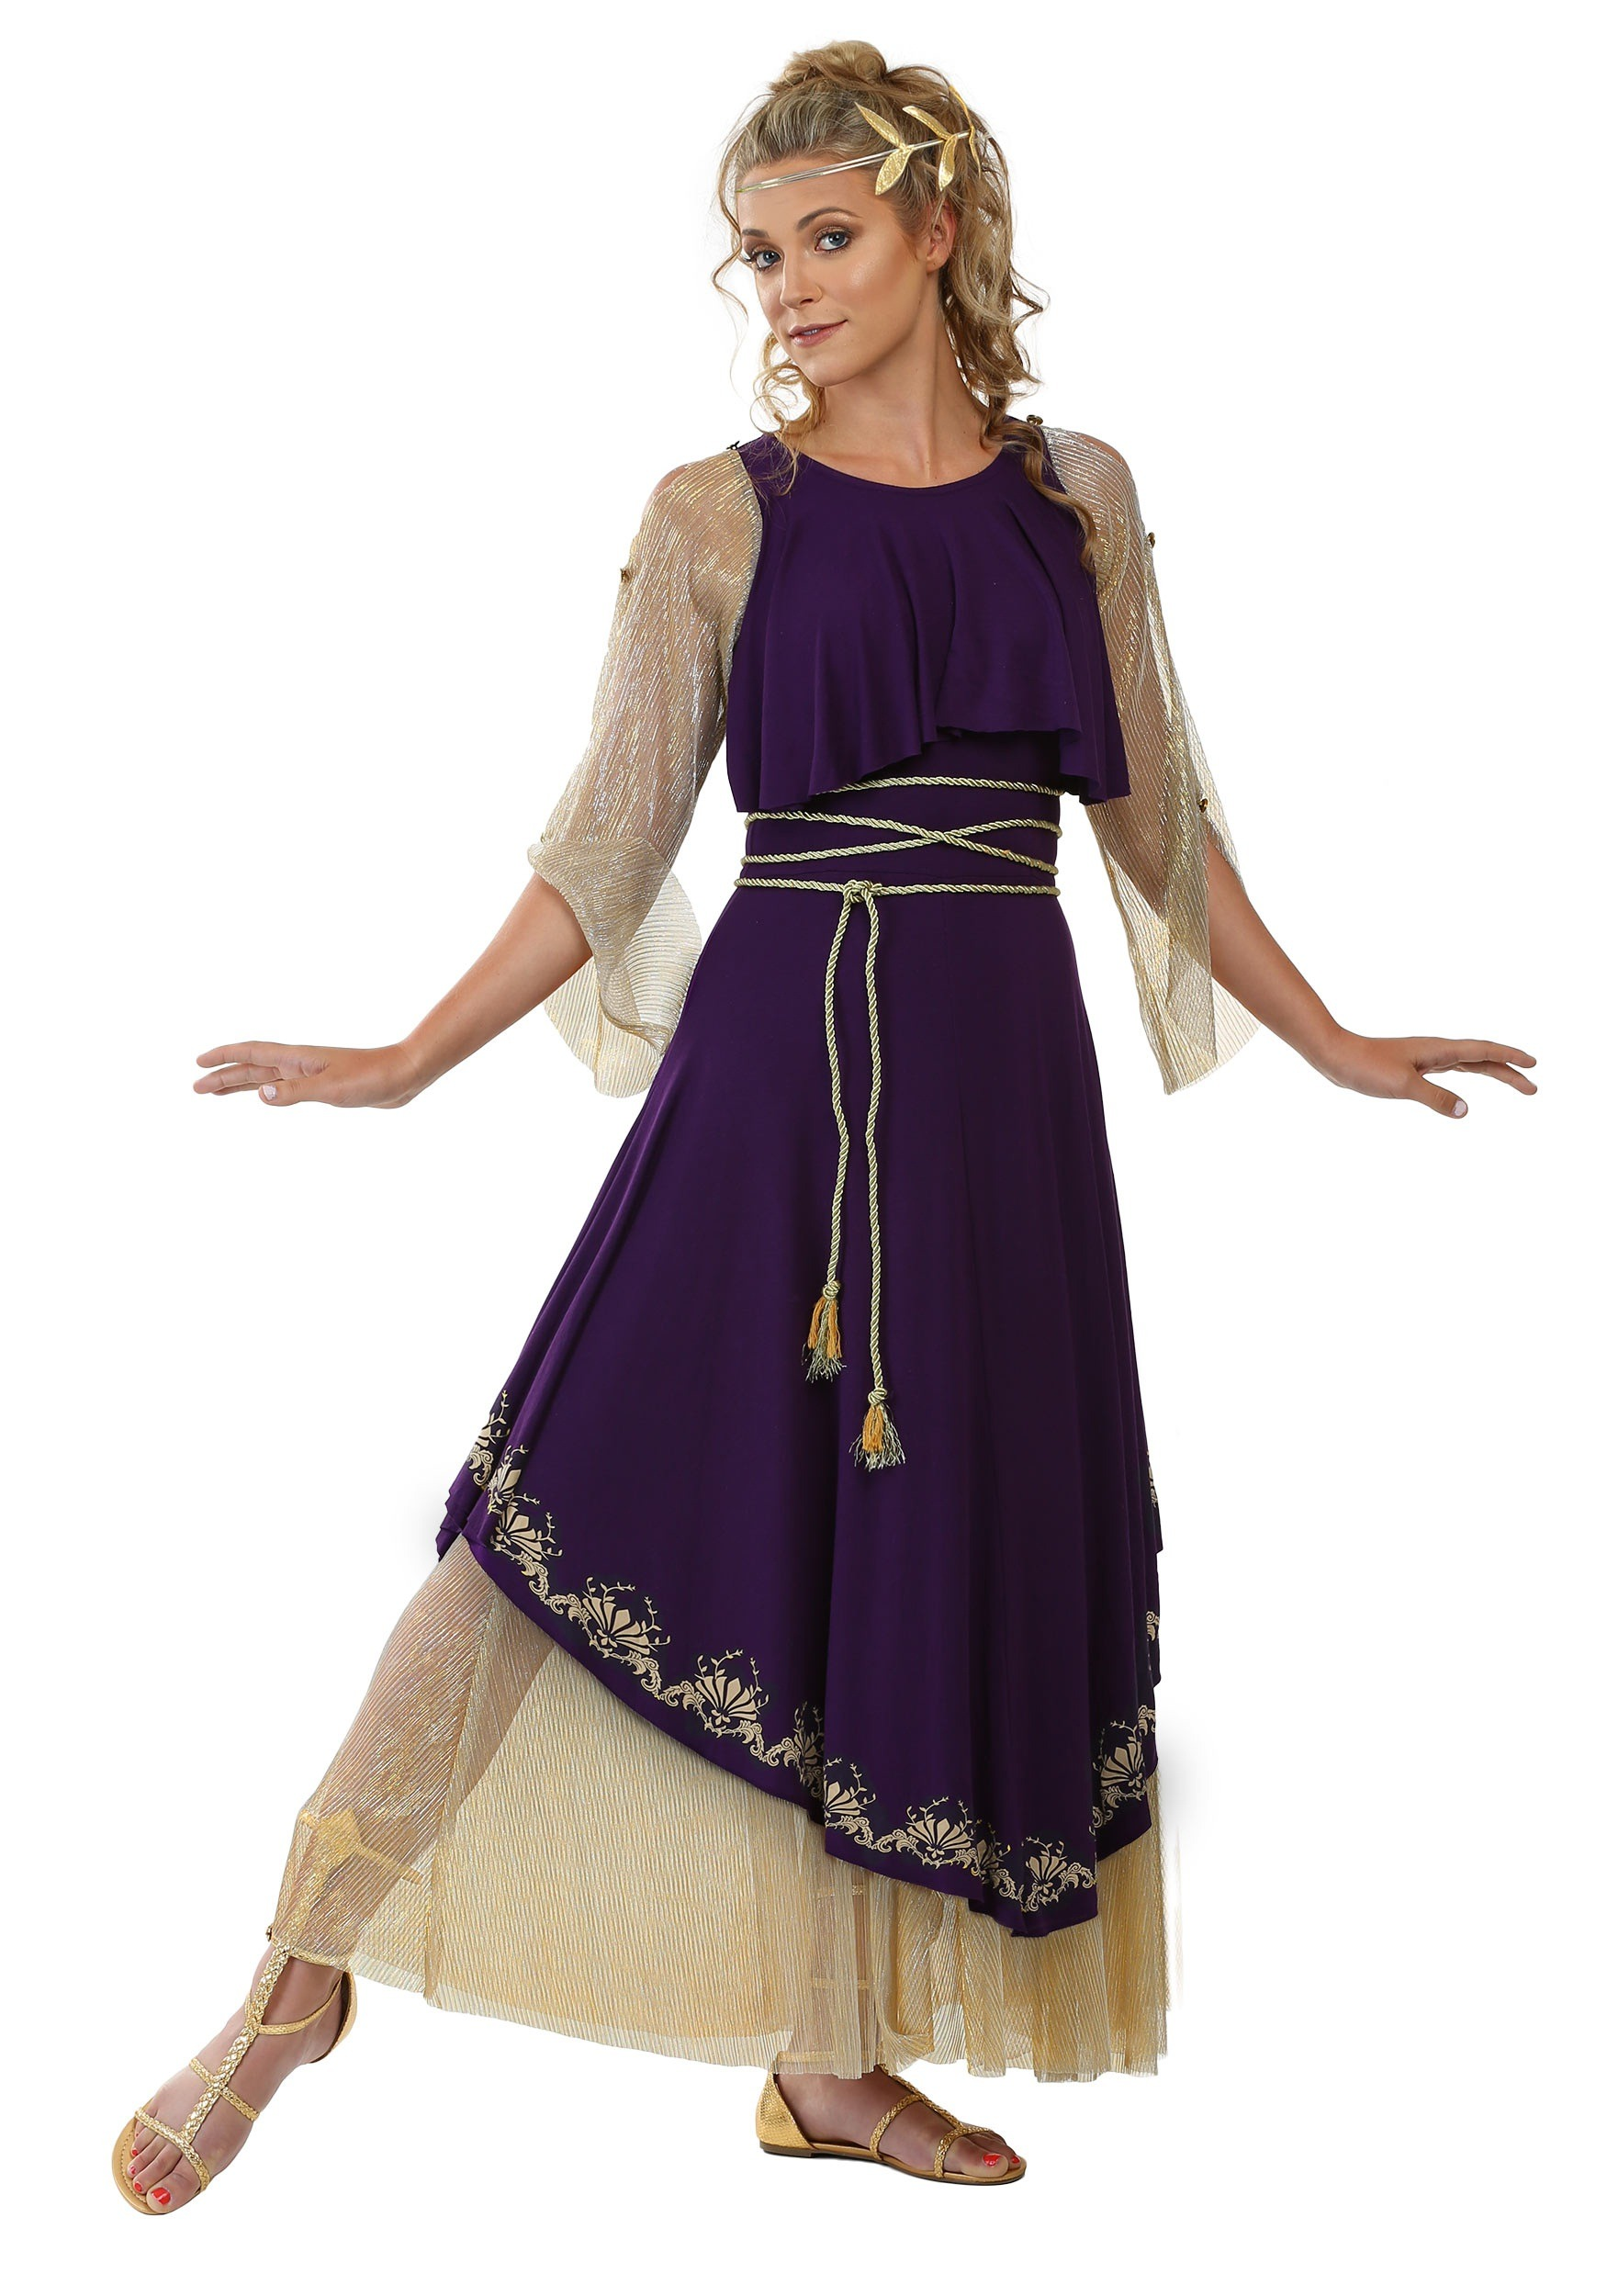 Aphrodite Goddess Plus Size Women's CostumeGreek Goddess Aphrodite With Clothes